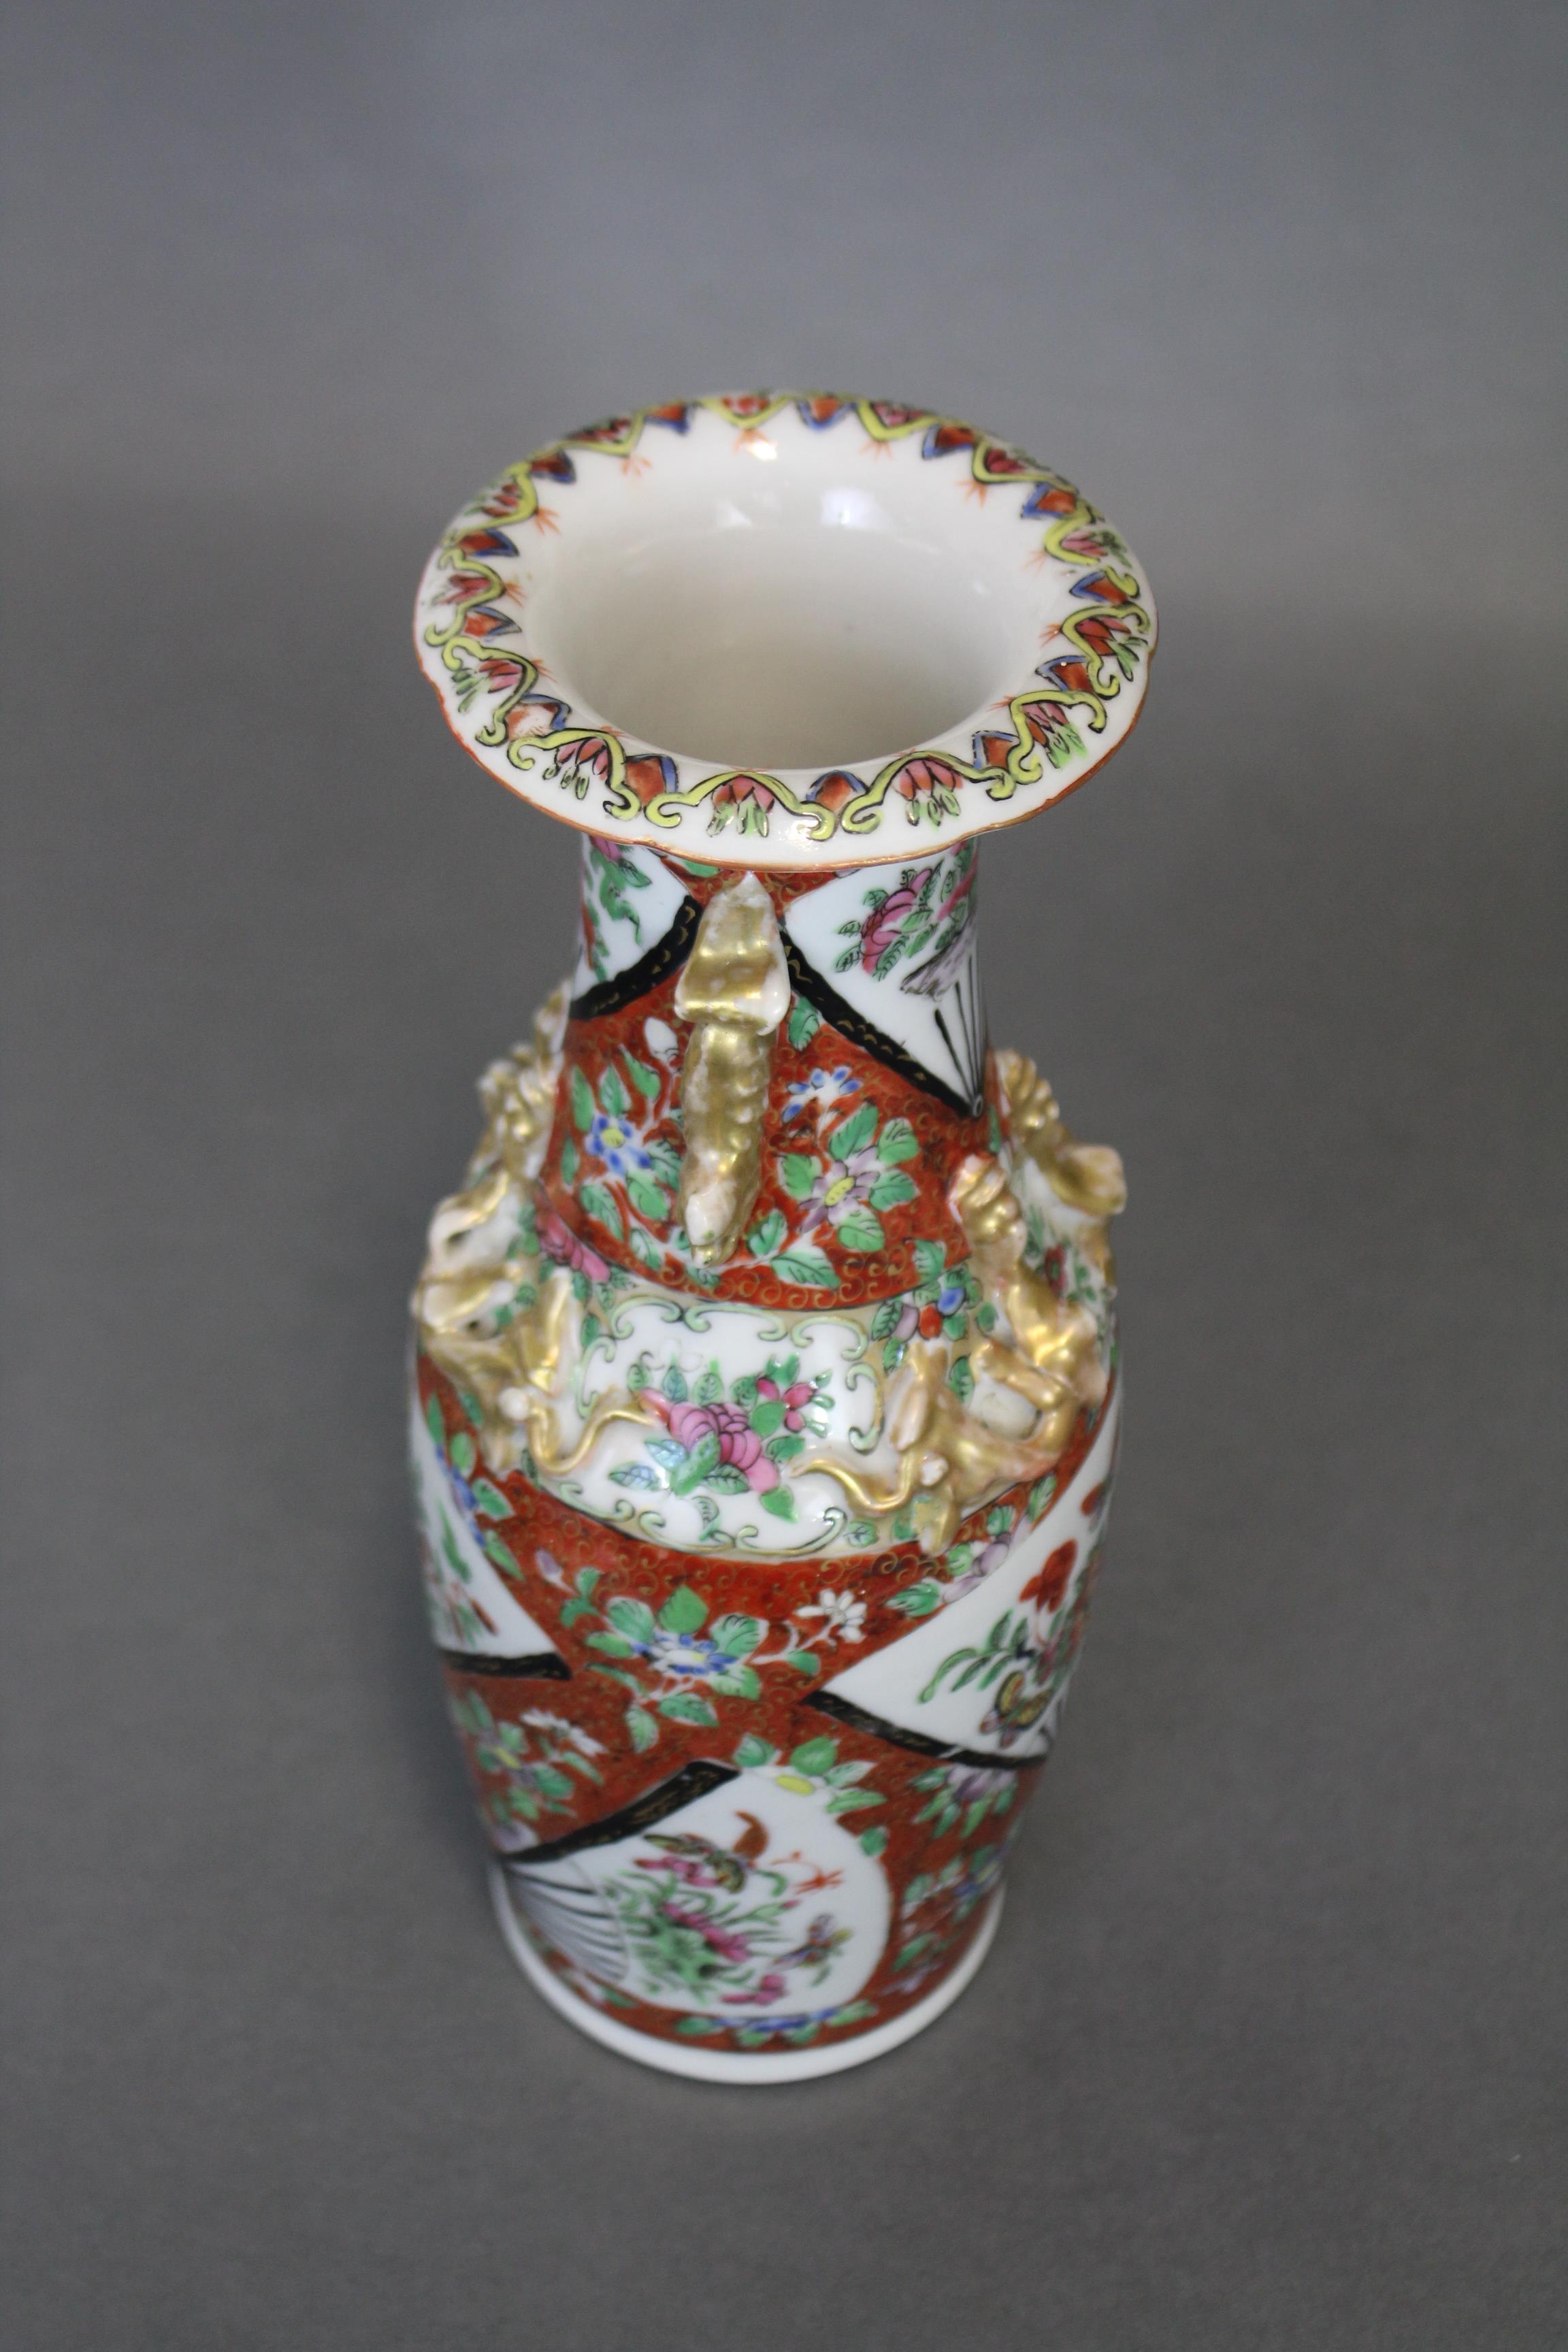 Lot 197 - A Chinese porcelain baluster vase of iron-red & gilt ground, with overturned rim & Qilin side